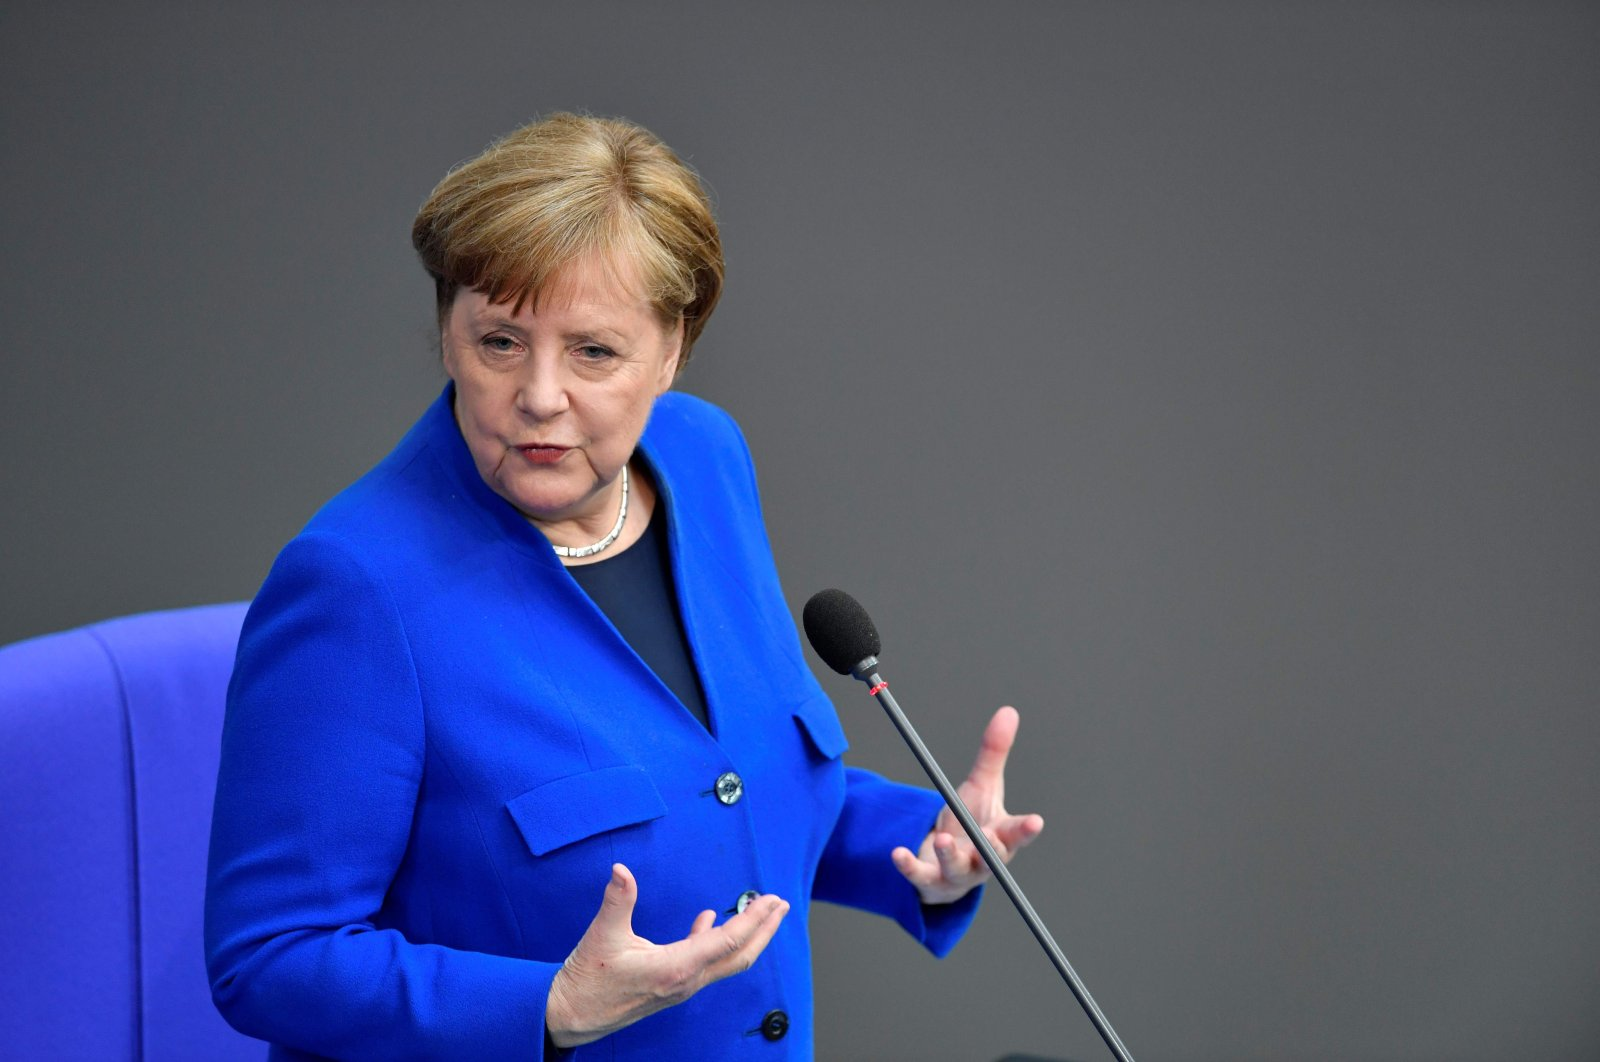 German Chancellor Angela Merkel speaks as she answers questions of parliament members at the Bundestag, the lower house of Parliament, Berlin, Germany, May 13, 2020. (AFP Photo)